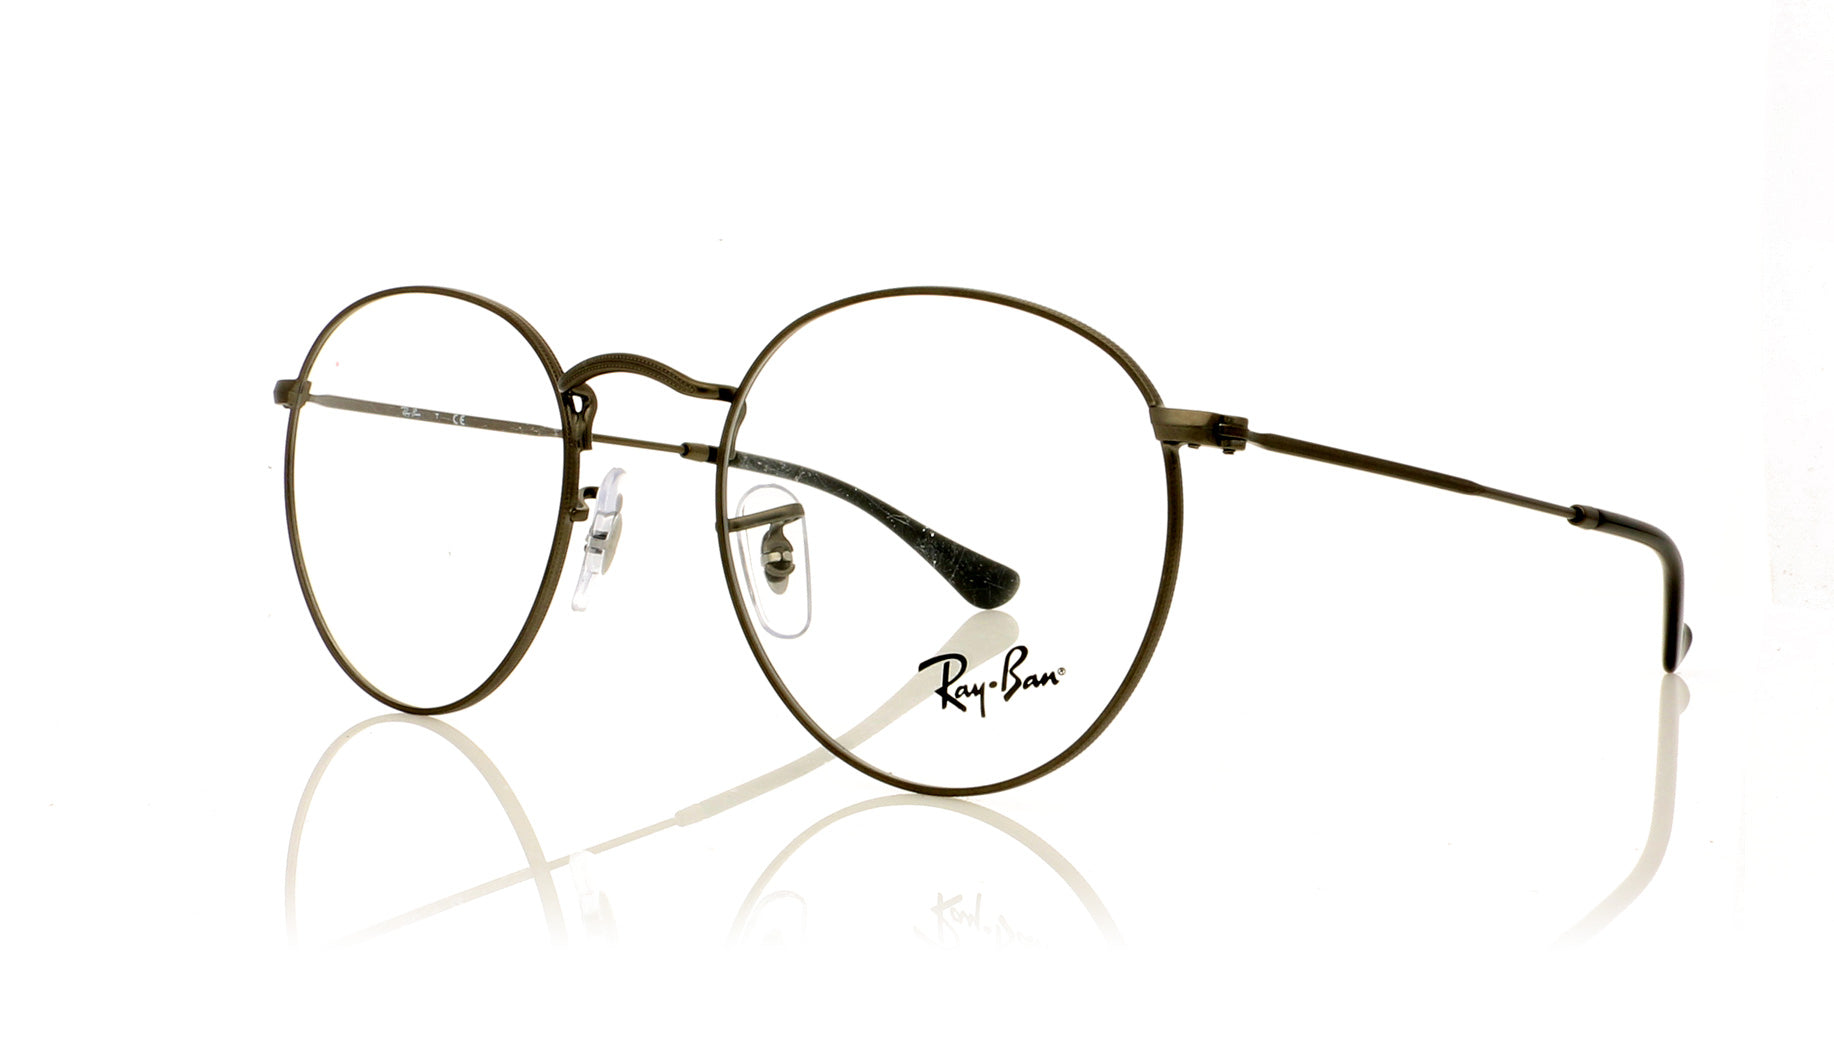 ... discount code for ray ban round metal rx3447v 2620 matte gunmetal  glasses at oco 4d43c c8777 87f44351331b